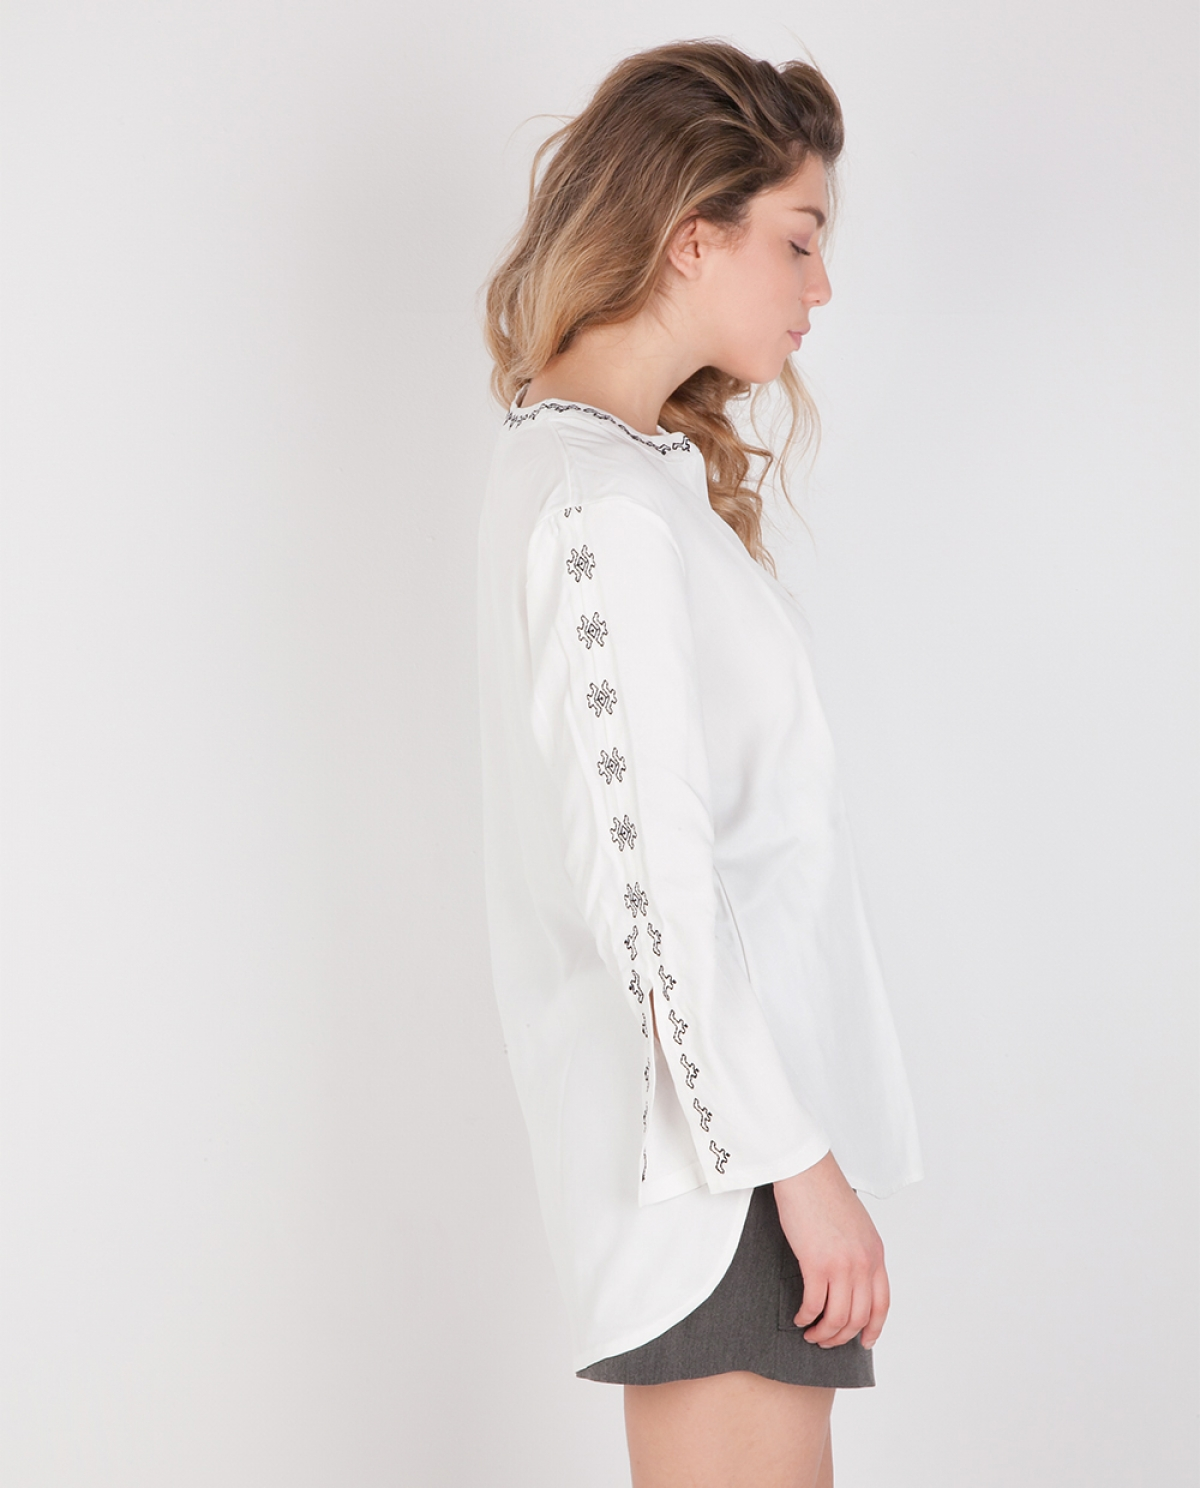 Amfipoli White Embroidered Blouse